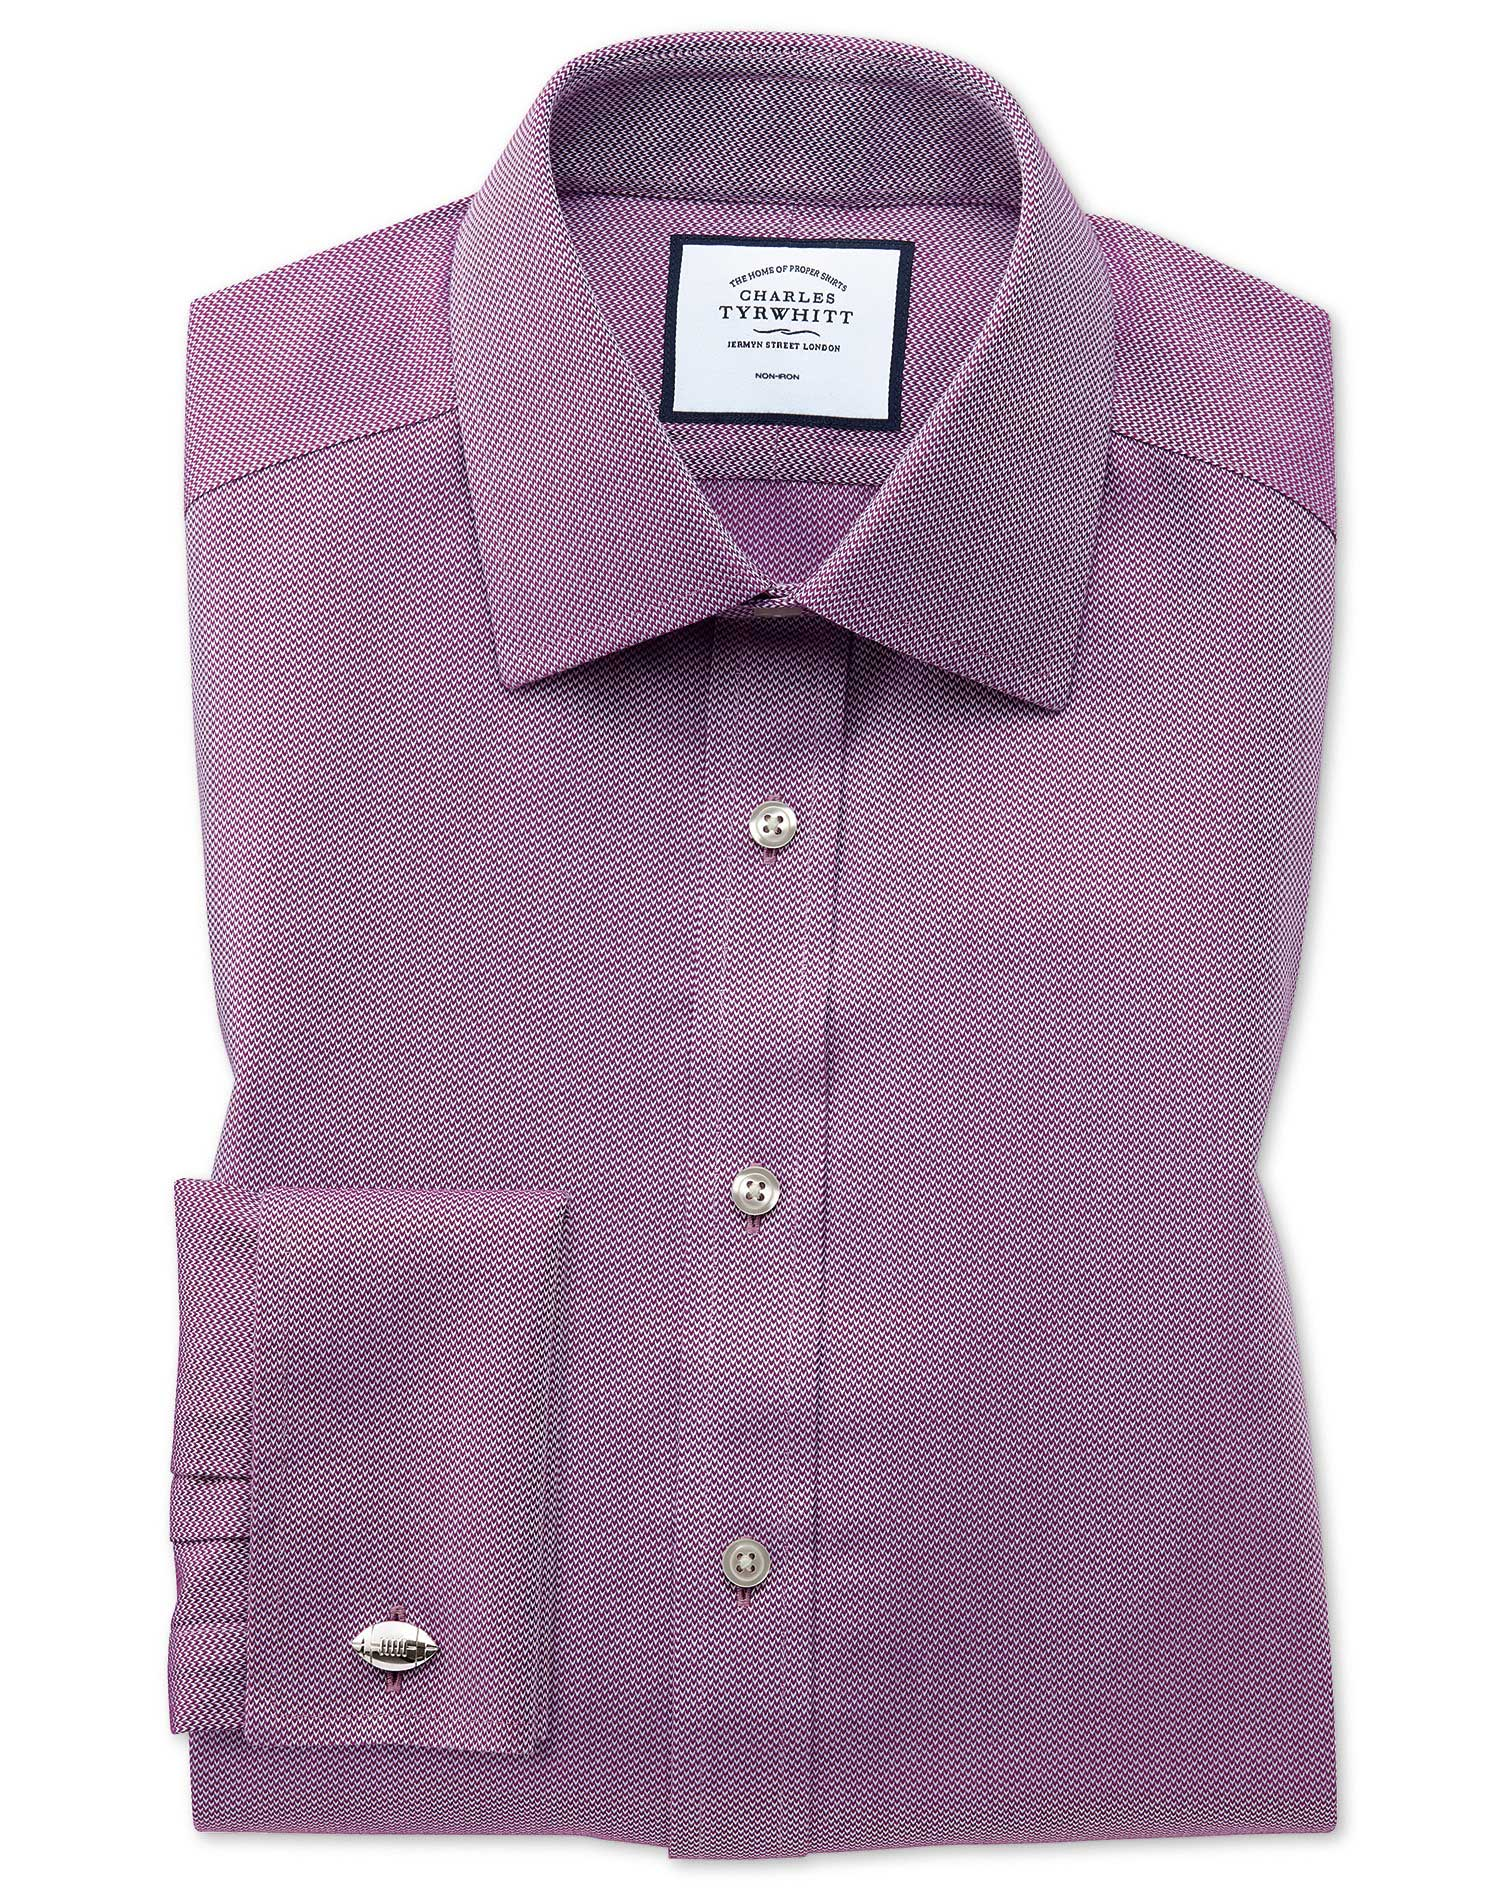 Slim Fit Non-Iron Berry Arrow Weave Cotton Formal Shirt Double Cuff Size 16.5/33 by Charles Tyrwhitt